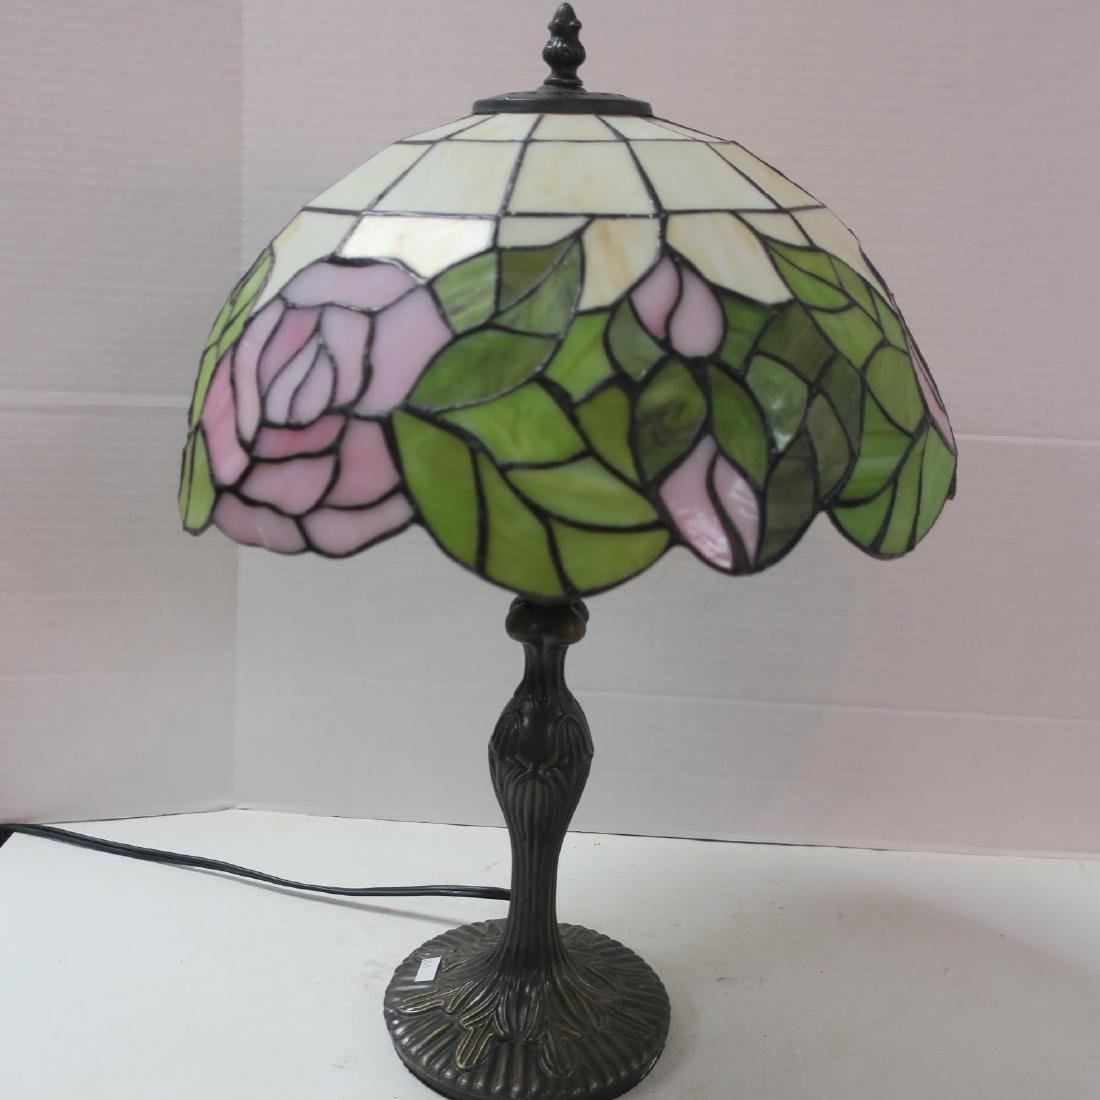 Table Lamp with Leaded Glass Dome Shaped Shade: